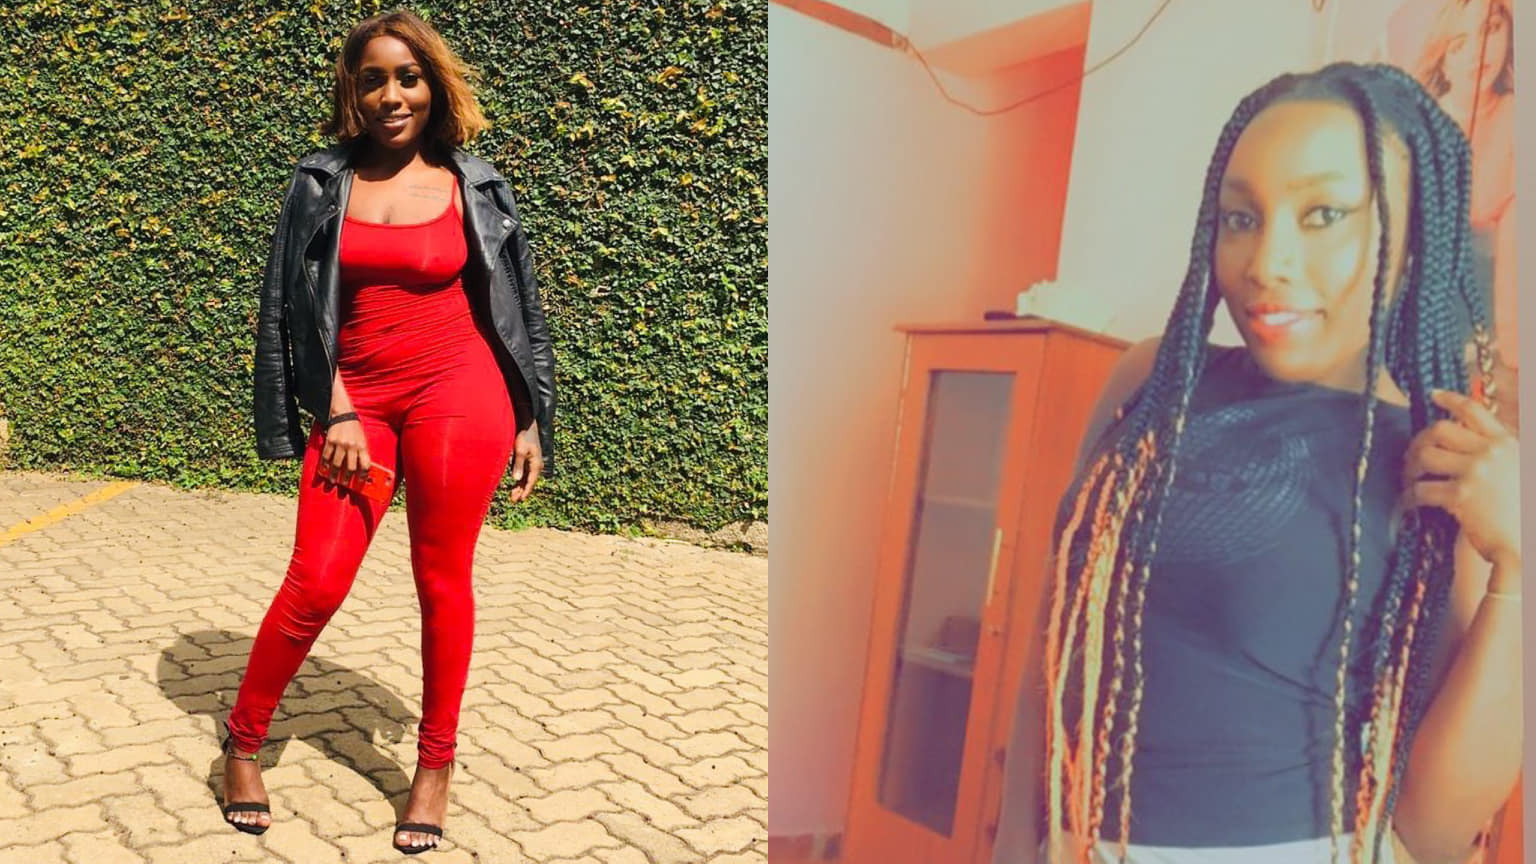 Kenyan Instagram Model Shelly Vuitton Found Dead After A House Party In Kilimani